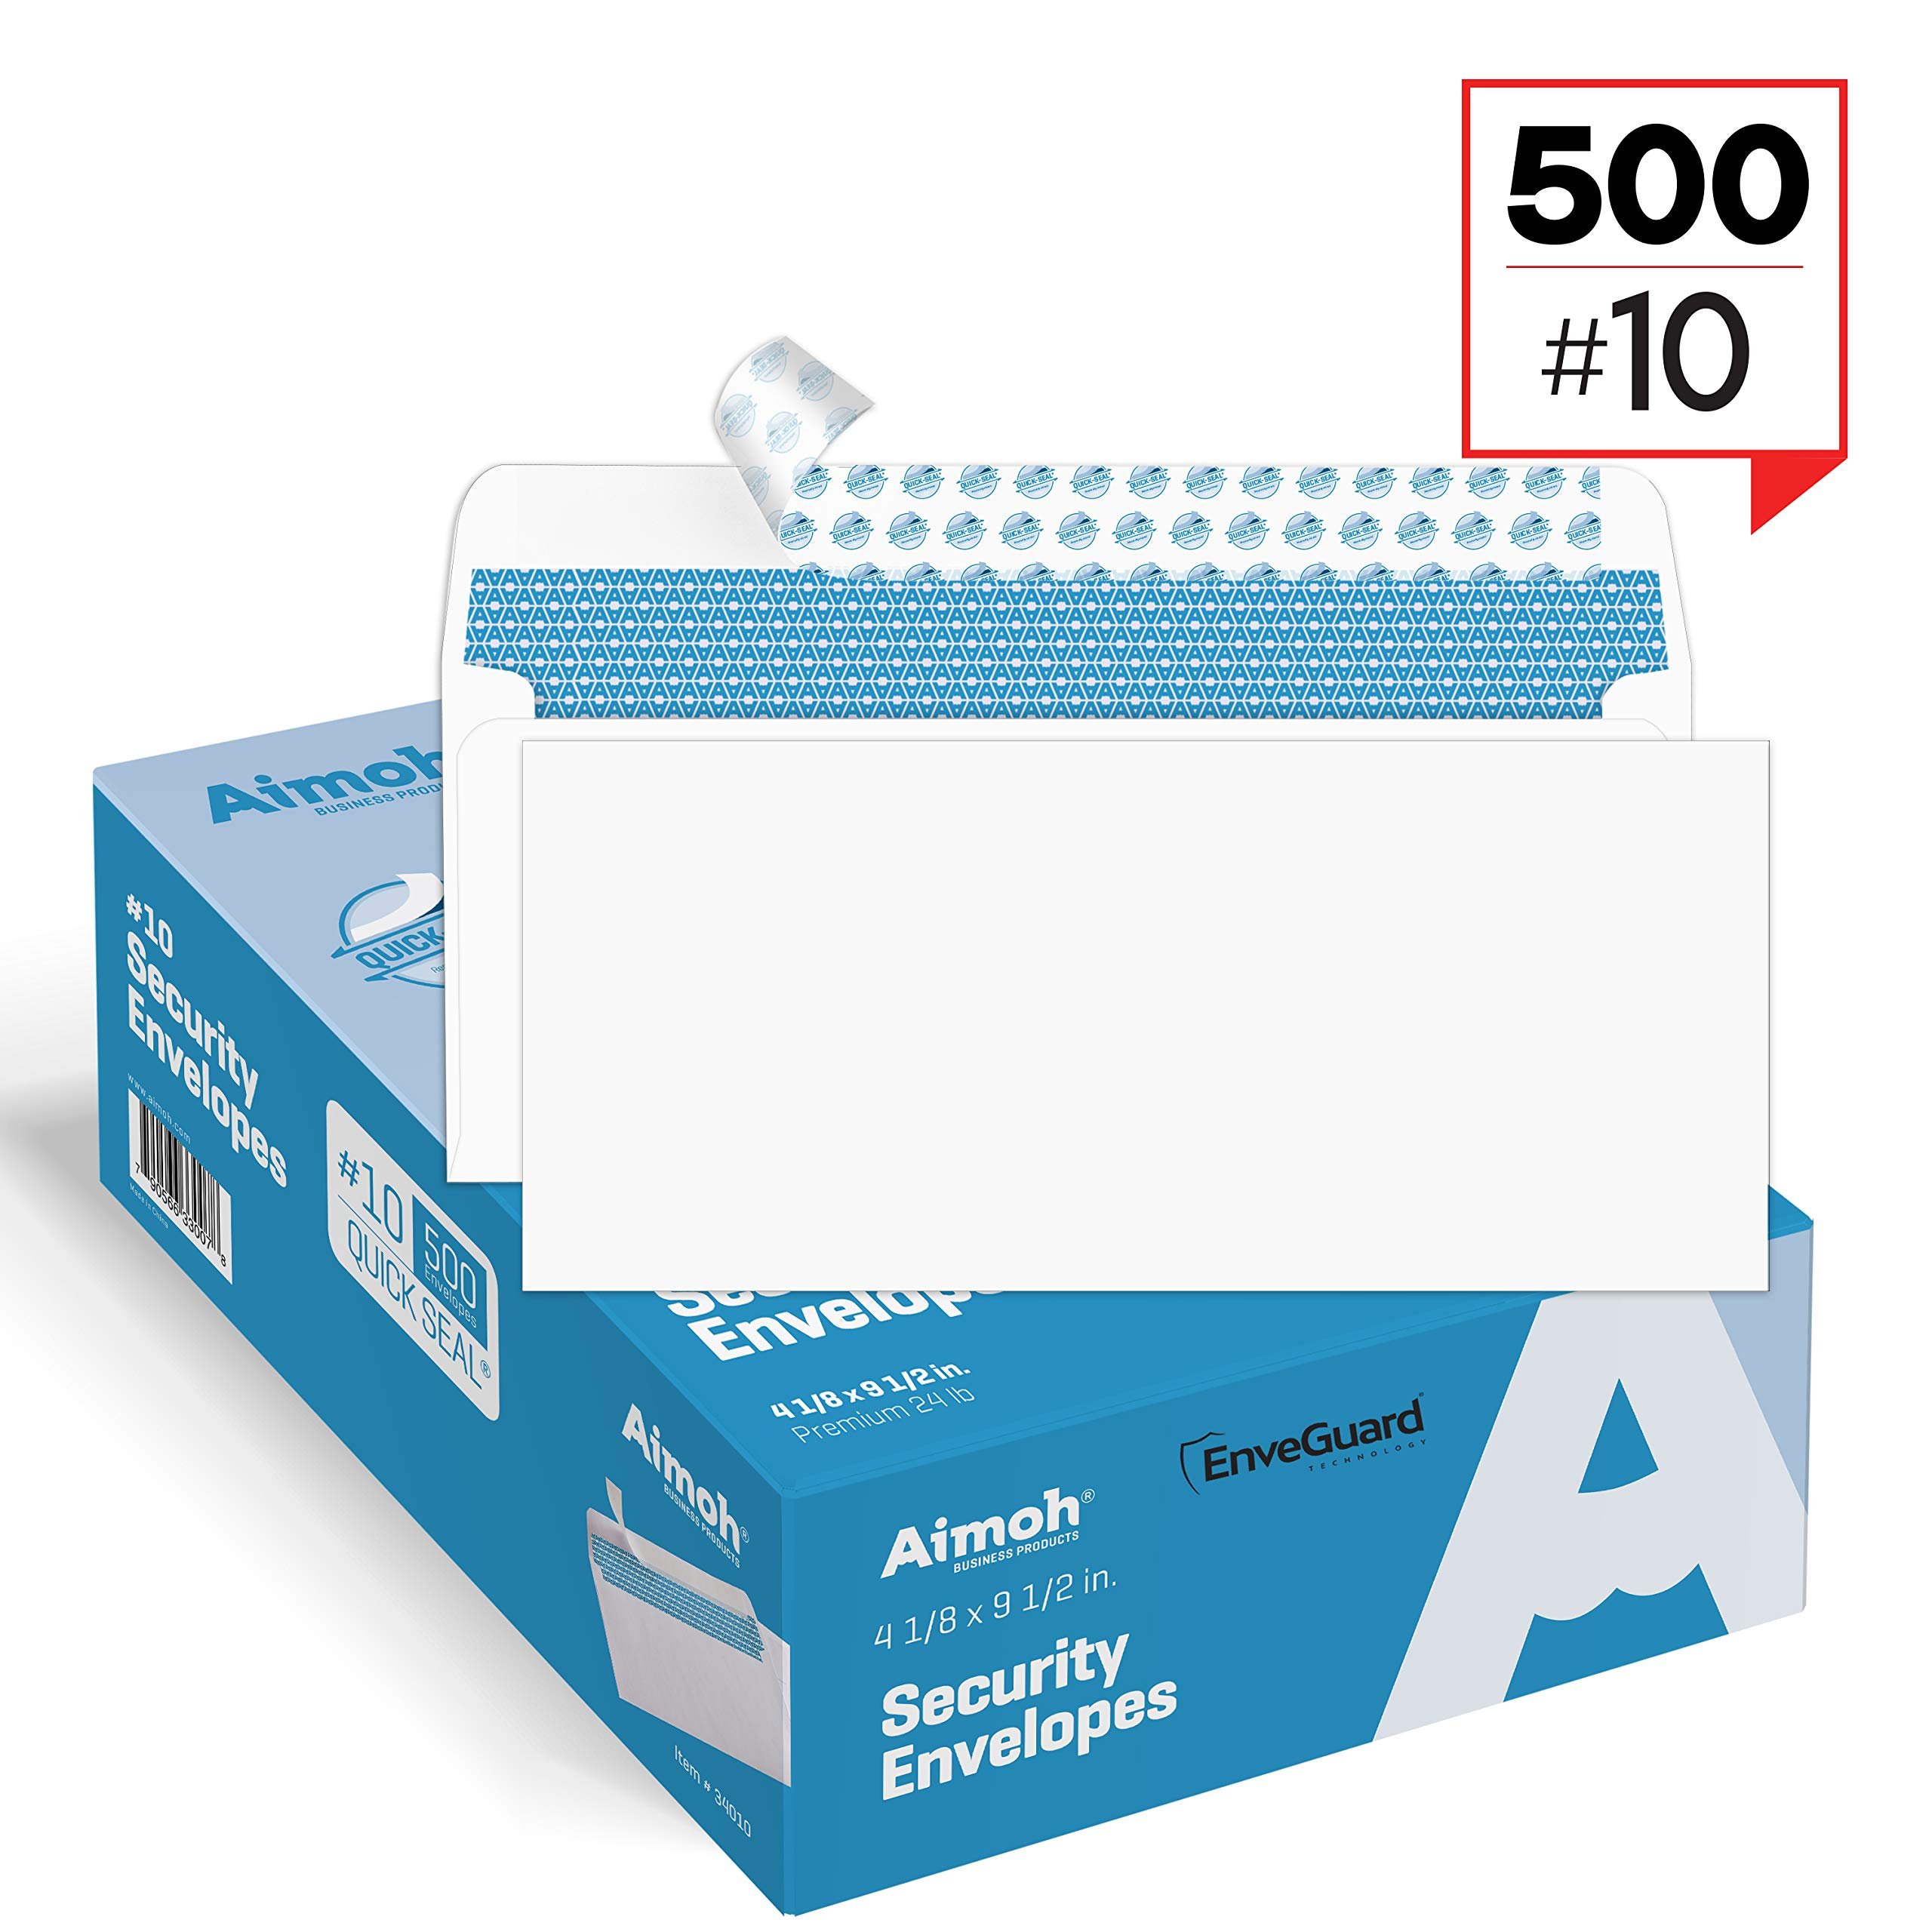 #10 Security Tinted Self-Seal Envelopes - No Window, Size 4-1/8 X 9-1/2 Inches - White - 24 LB - EnveGuard - 500 Count (34450)